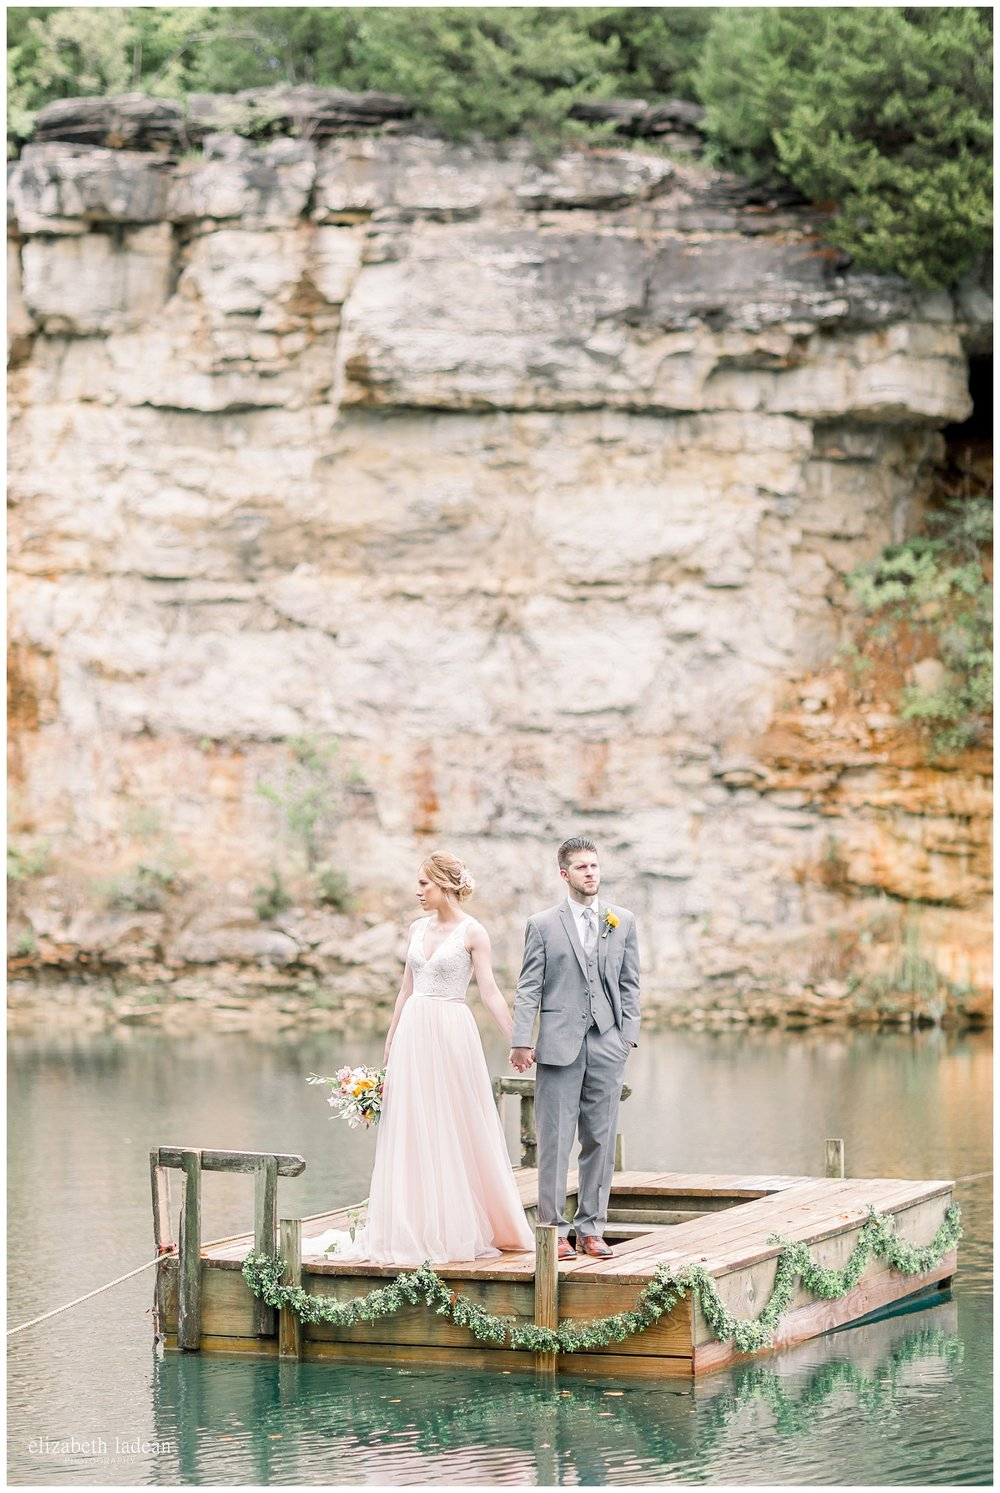 adventurous-wedding-photos-at-wildcliff-July2018-elizabeth-ladean-photography-photo-_9585.jpg